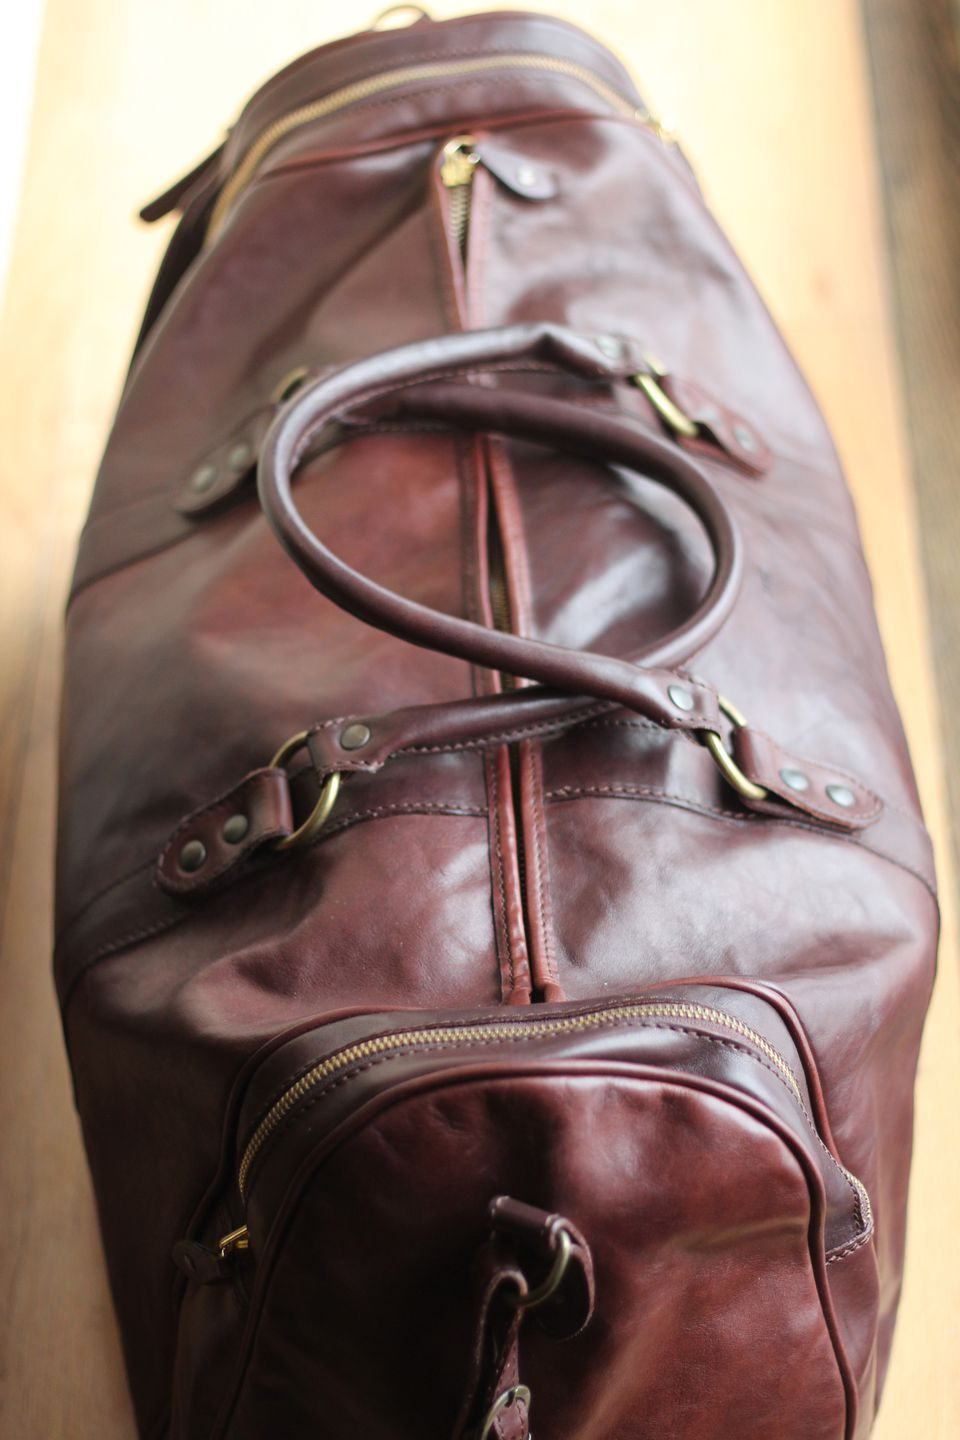 How to travel with just a carry-on bag